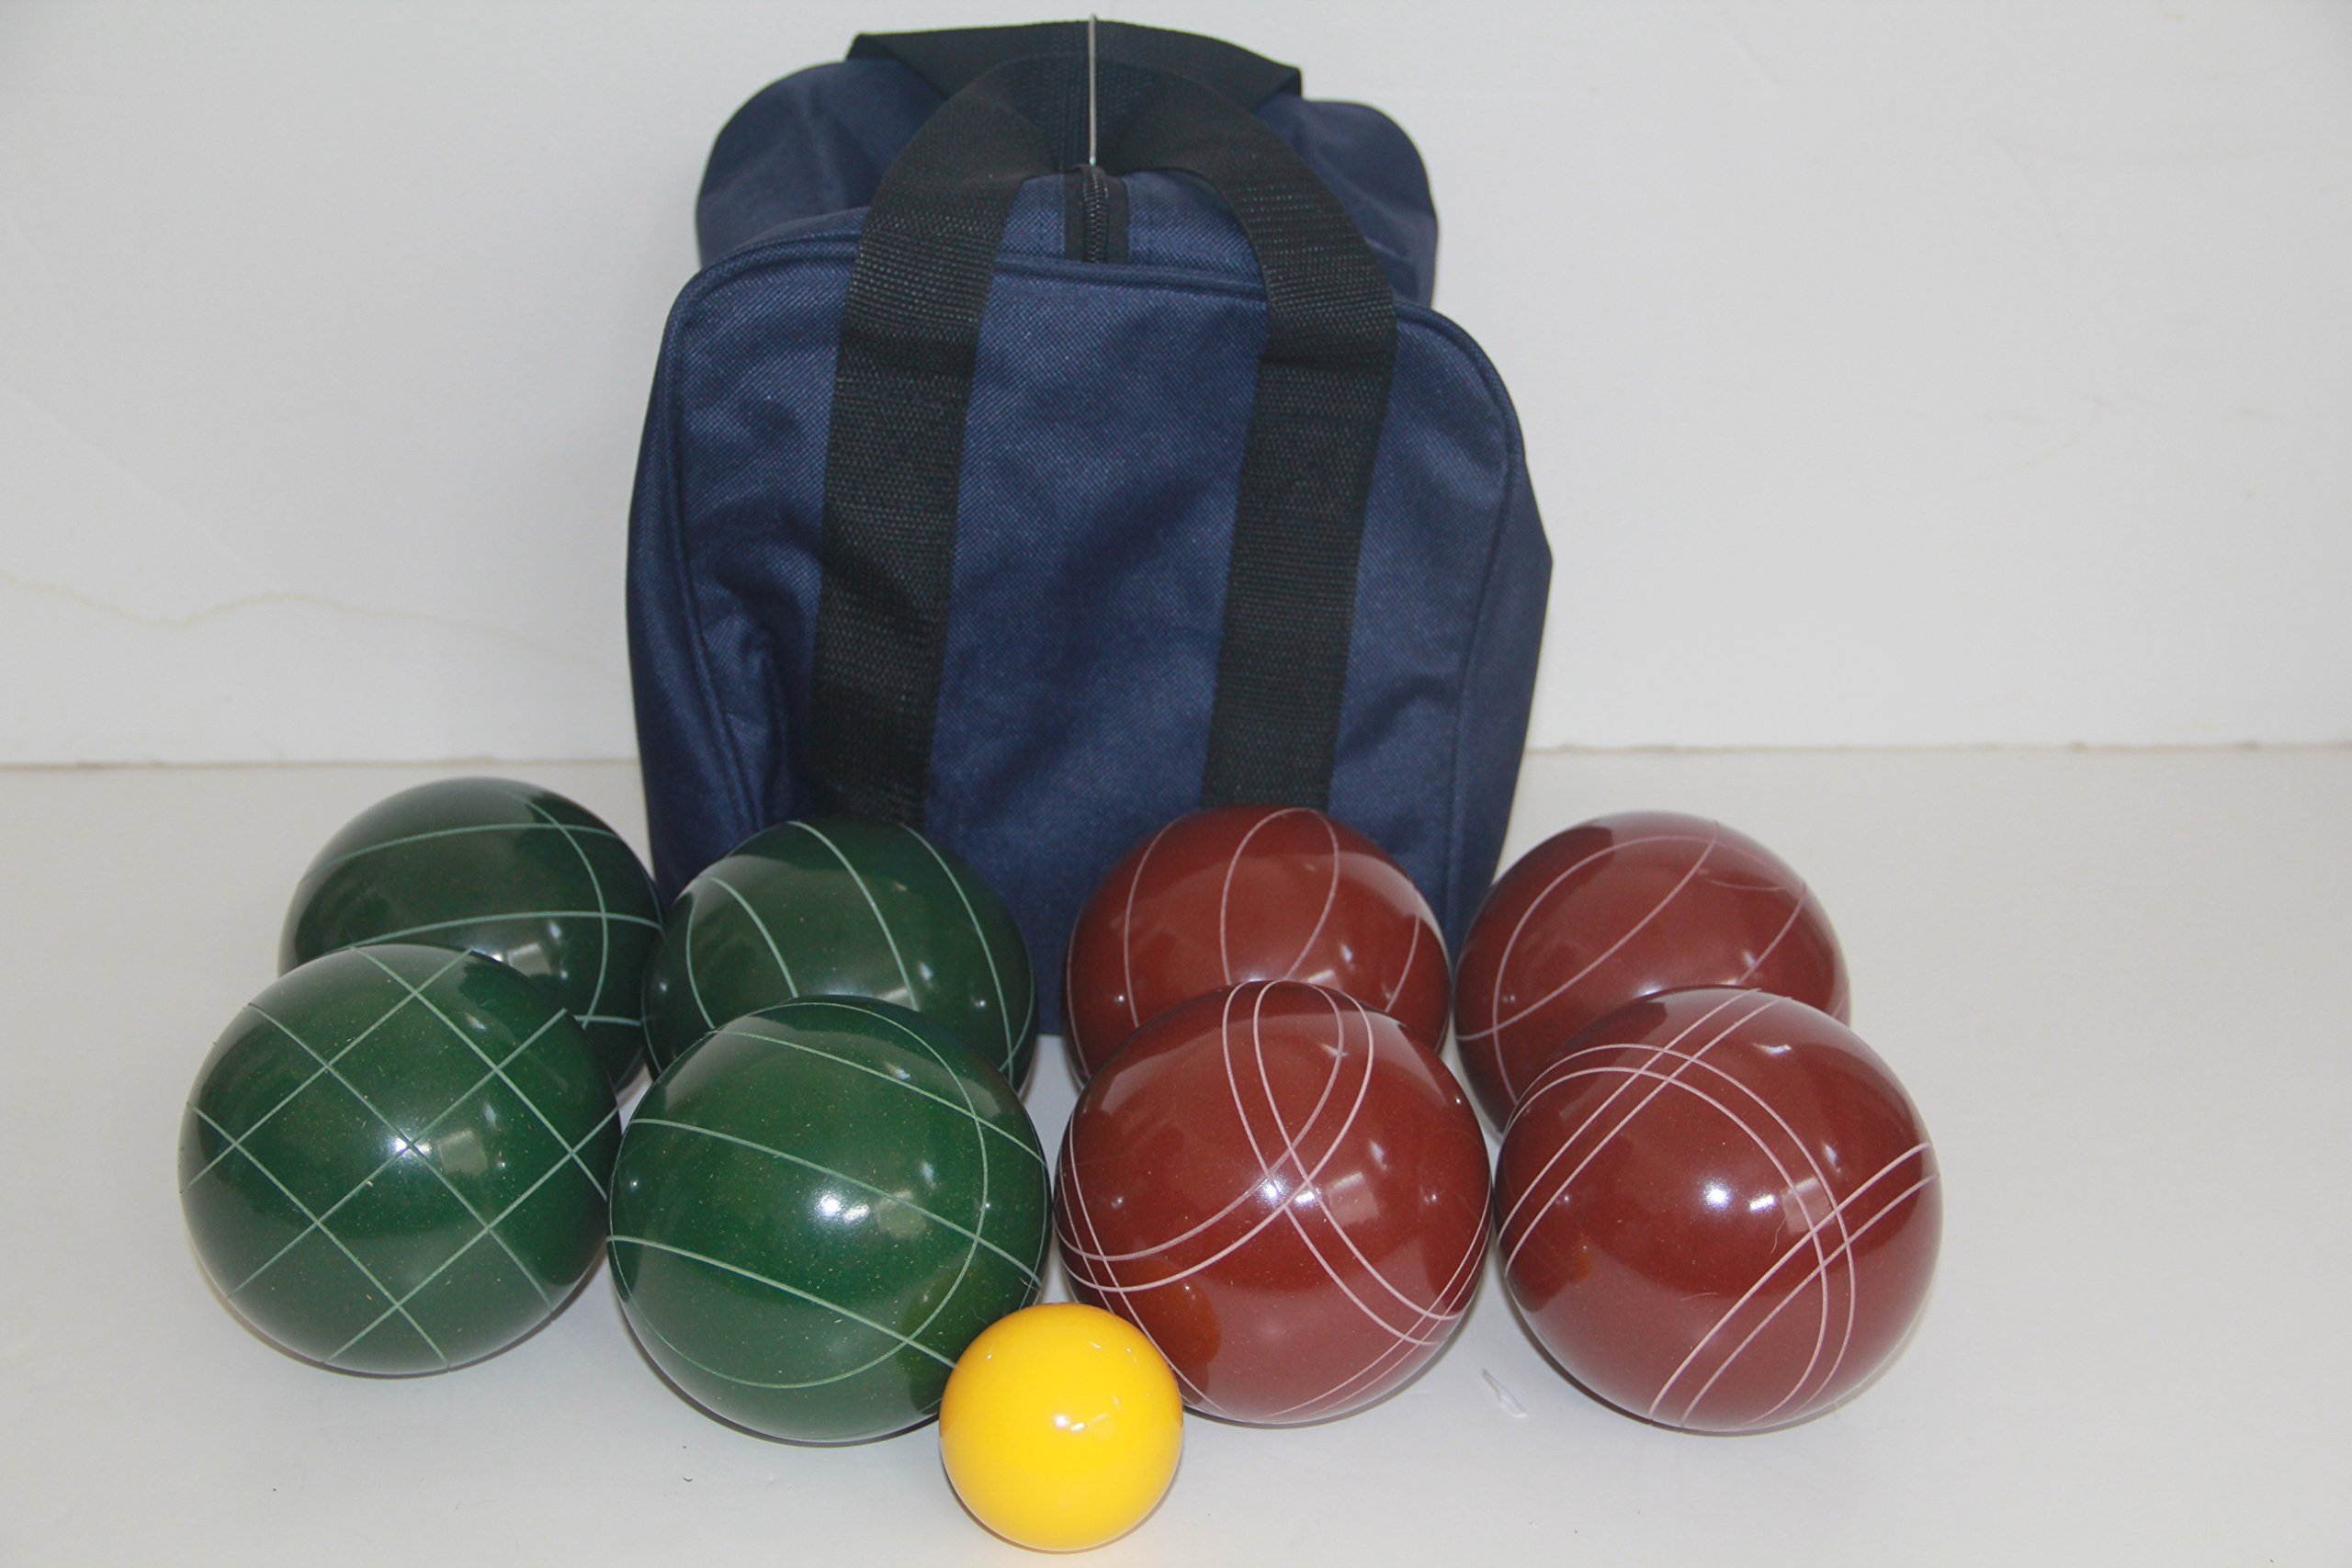 Premium Quality and American Made, 110mm EPCO Bocce Set - dark red and green balls and blue/black bag by BuyBocceBalls